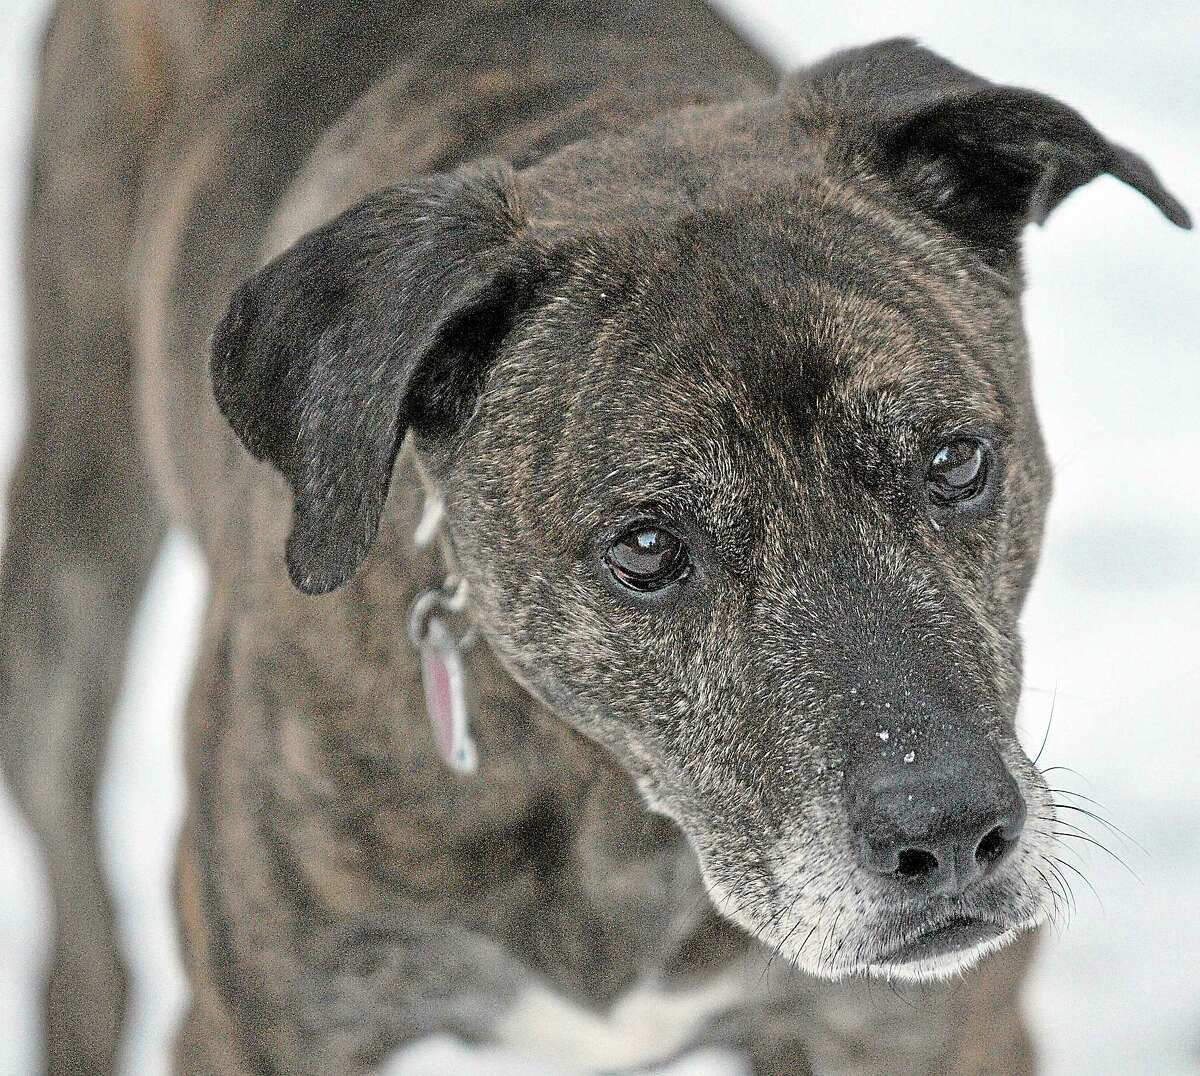 The owners of Gam, a lab-greyhound mix, agree with the state's tethering law prohibiting owners from chaining dogs during severe weather.